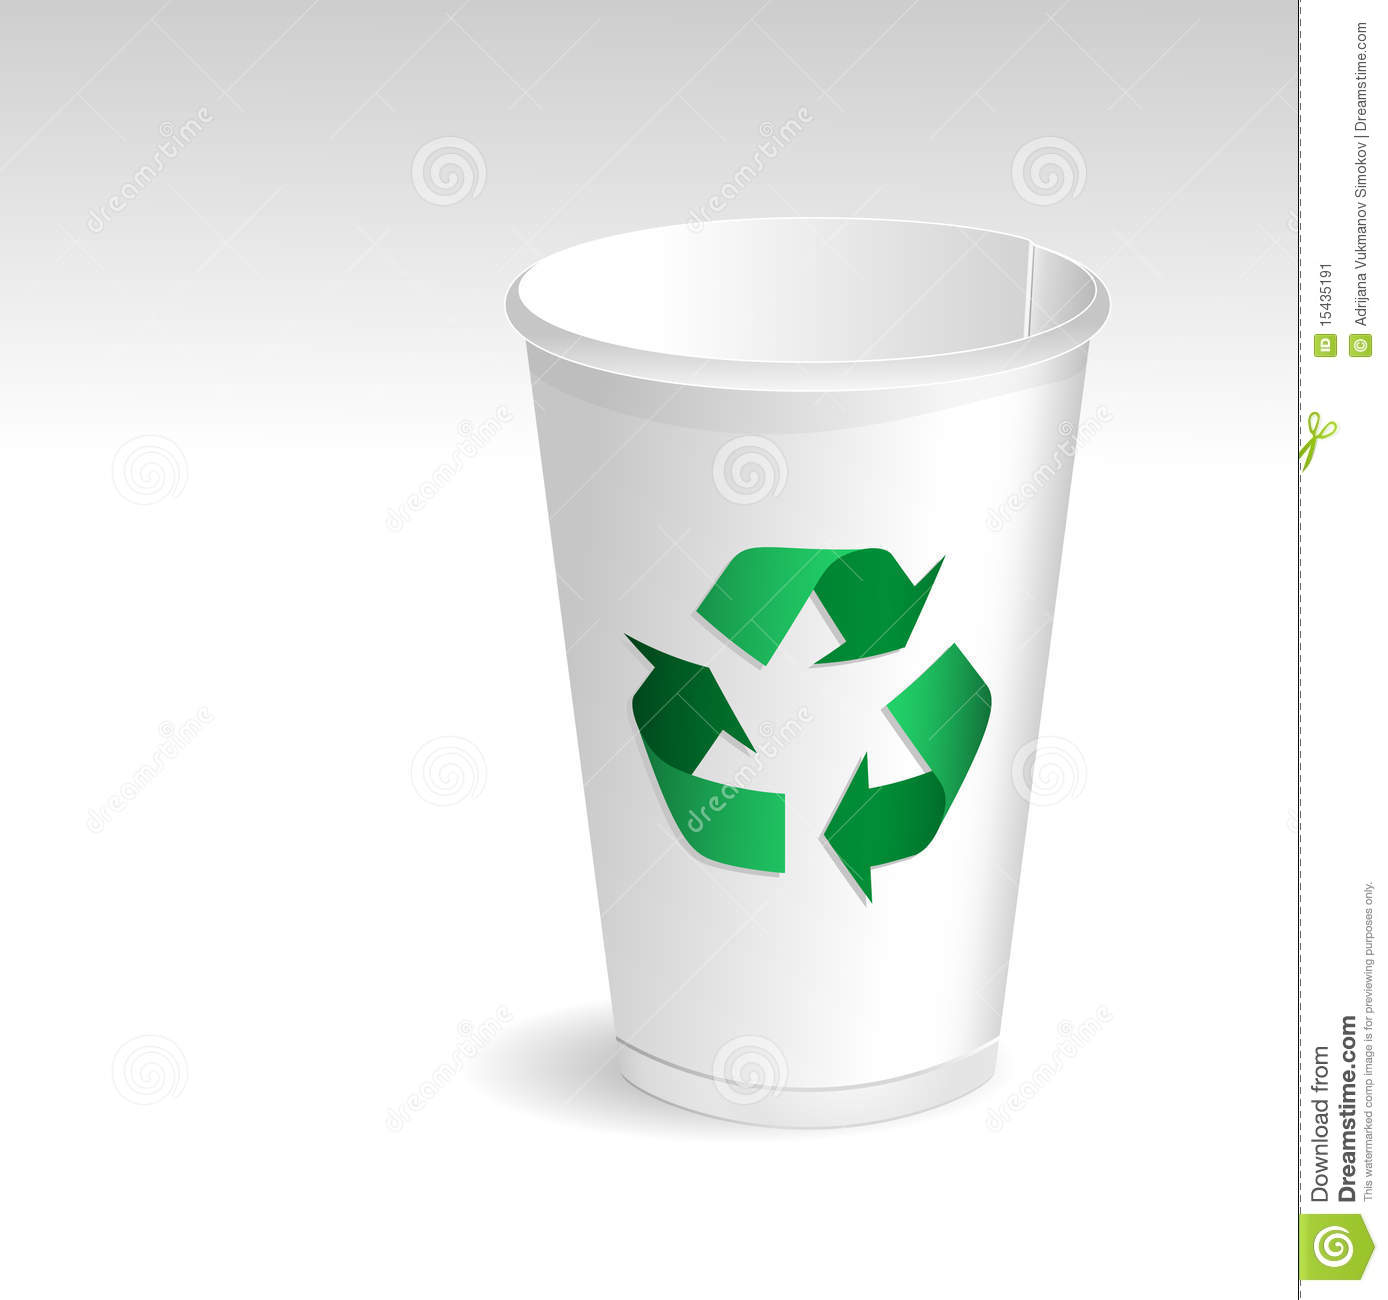 How To Start Paper Cup Making Business?